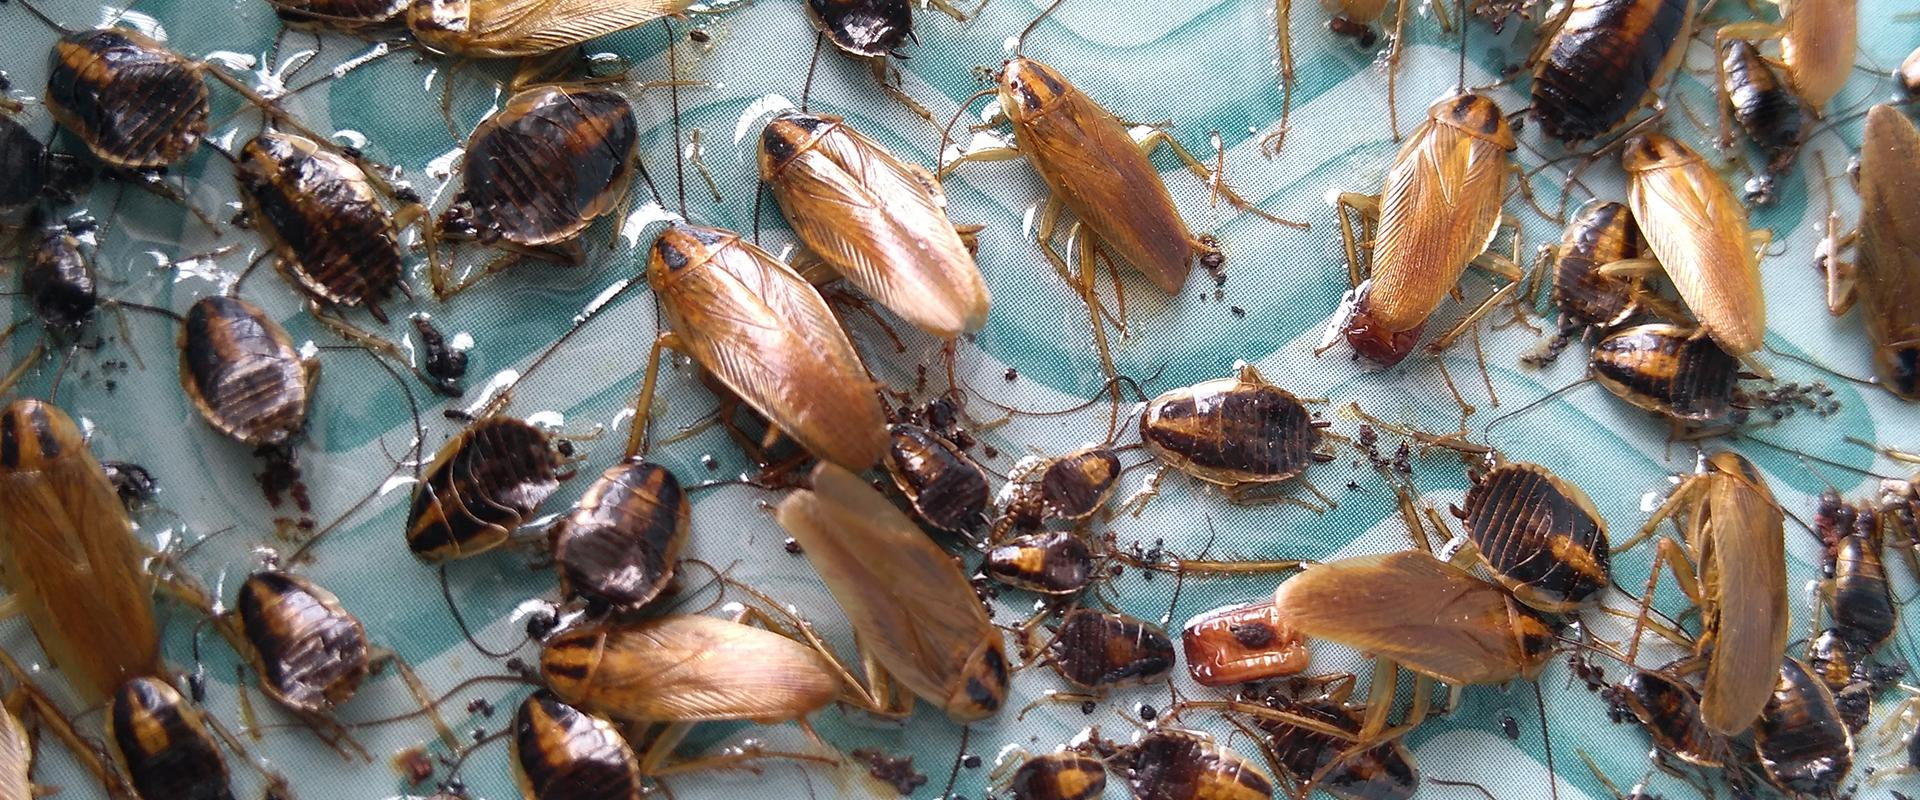 cockroaches in water